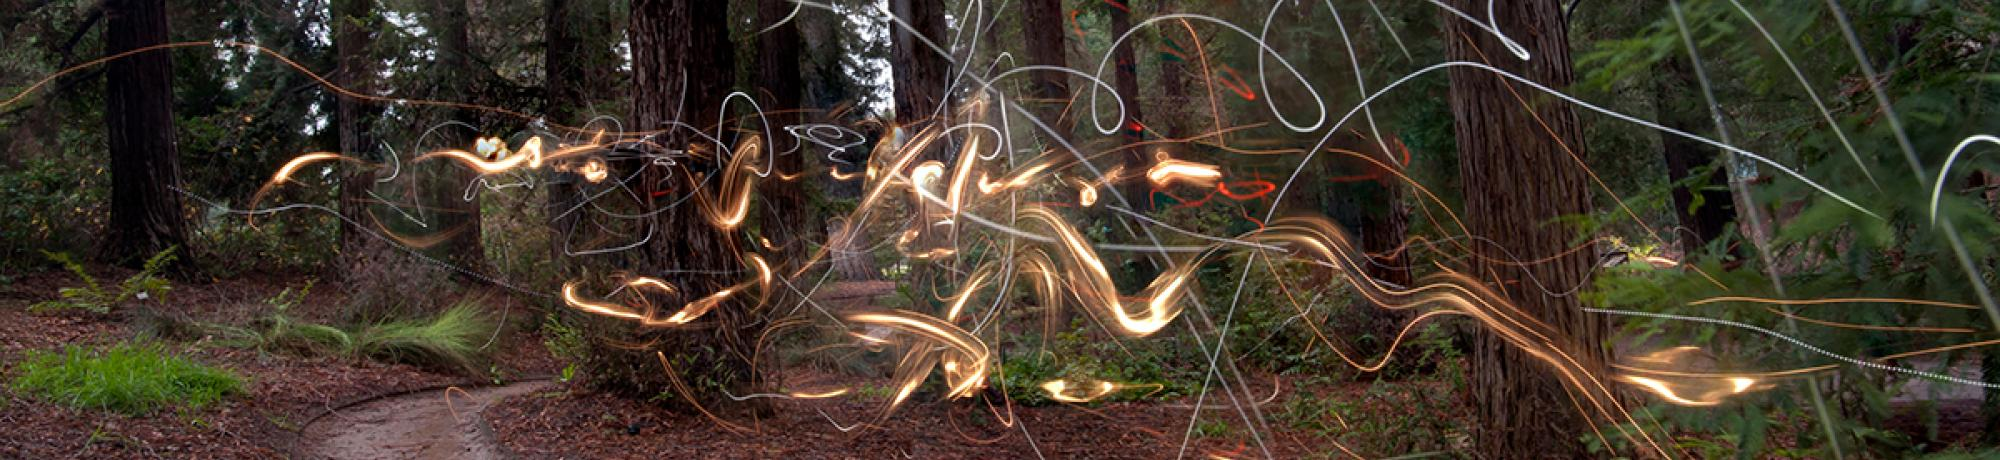 Photo: squiggles of light along path in the UC Davis arboretum's redwood grove